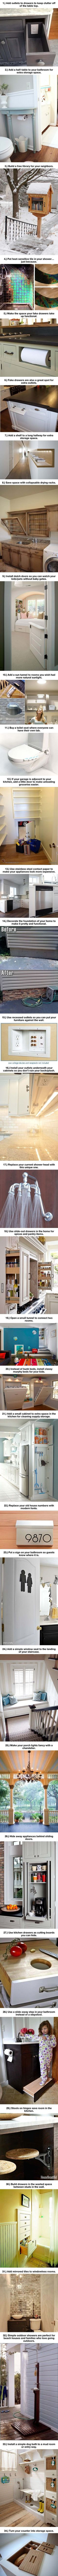 34 Relatively Simple Things That Will Make Your Home Extremely Awesome - 9GAG